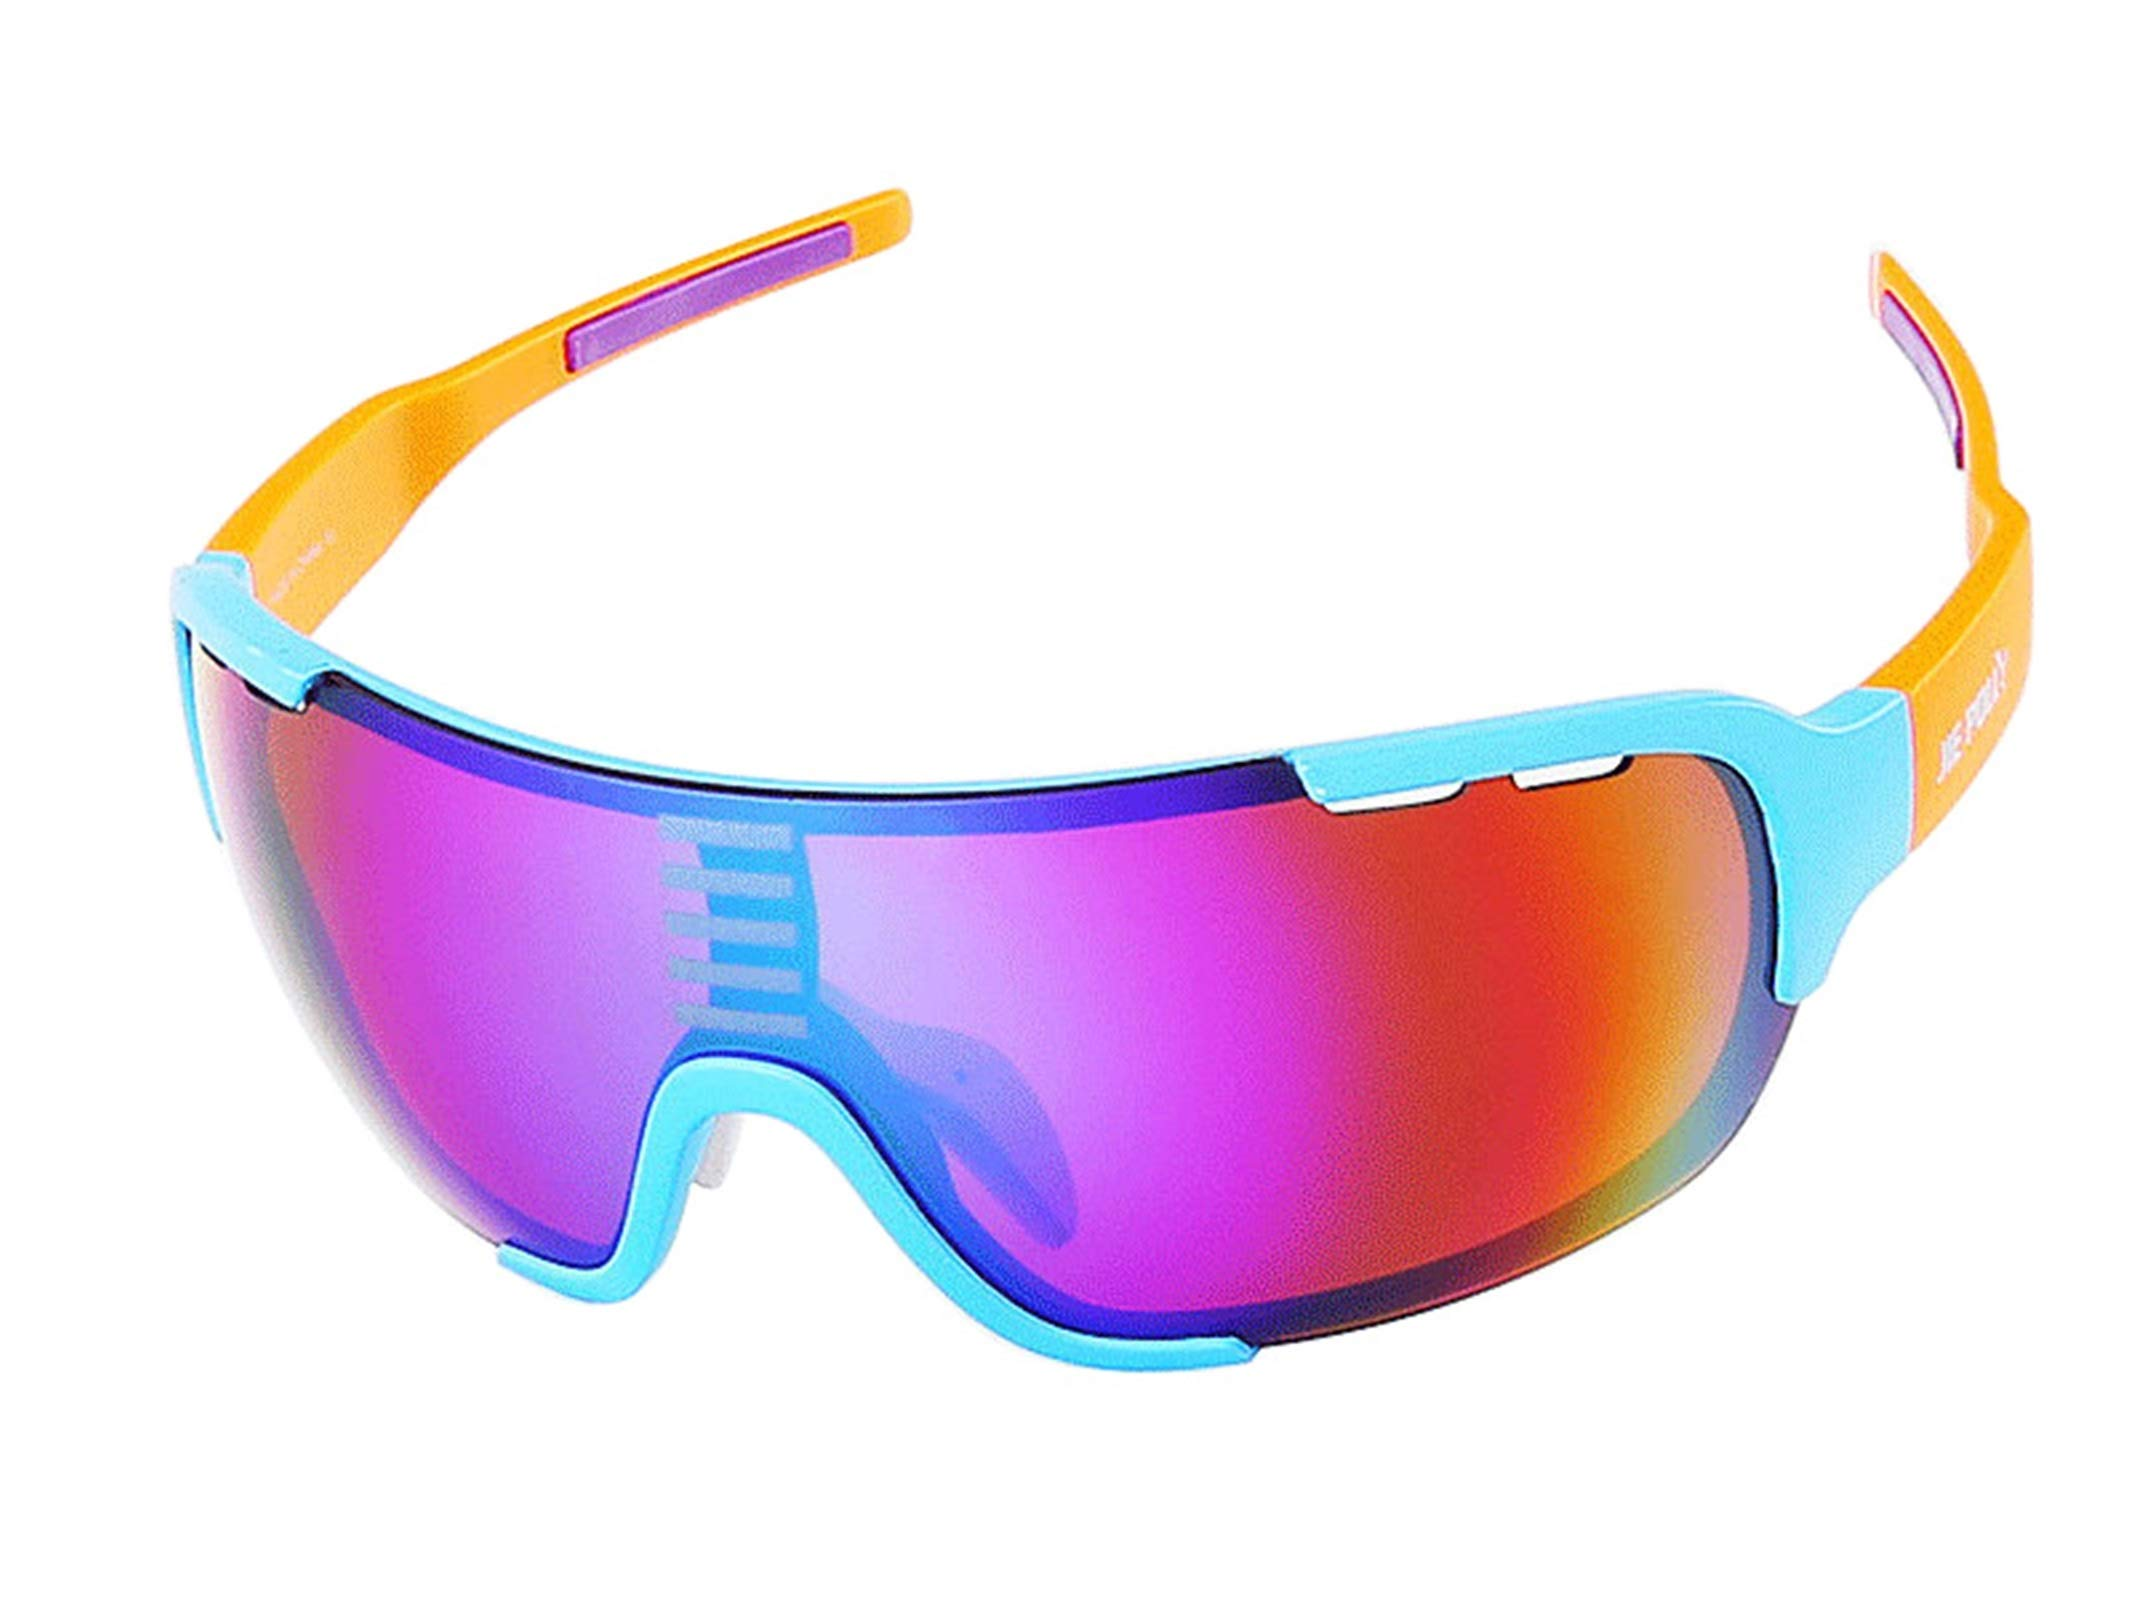 Adisaer Cycling Sunglasses Youth Cycling Color Changing Sports Fishing Outdoor Hiking Goggles Blue Orange for Adults